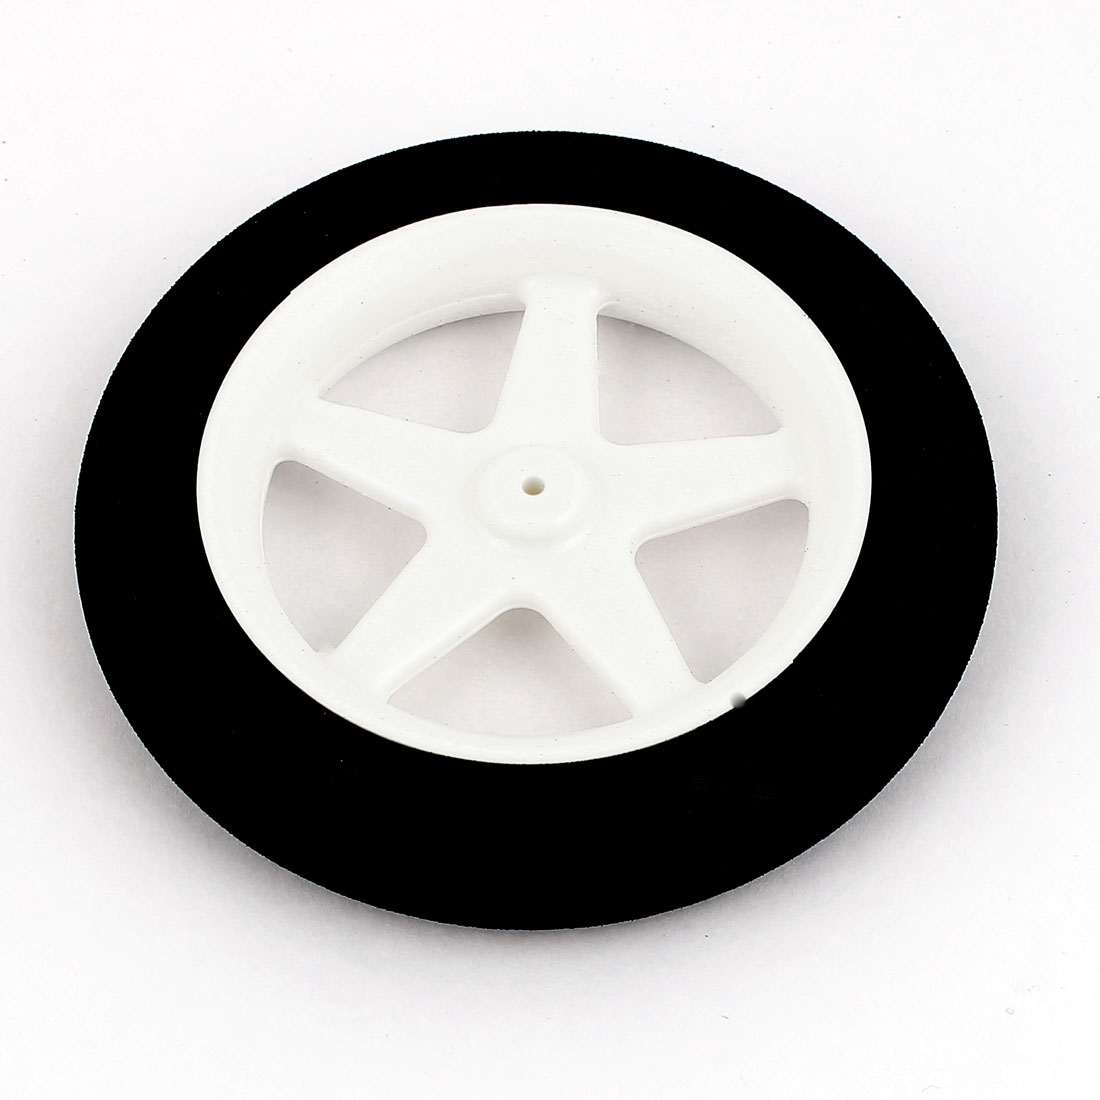 2mm Shaft Hole RC Plane Tail Tire Lightweight Sponge Wheel Metric Size D76 H12.7